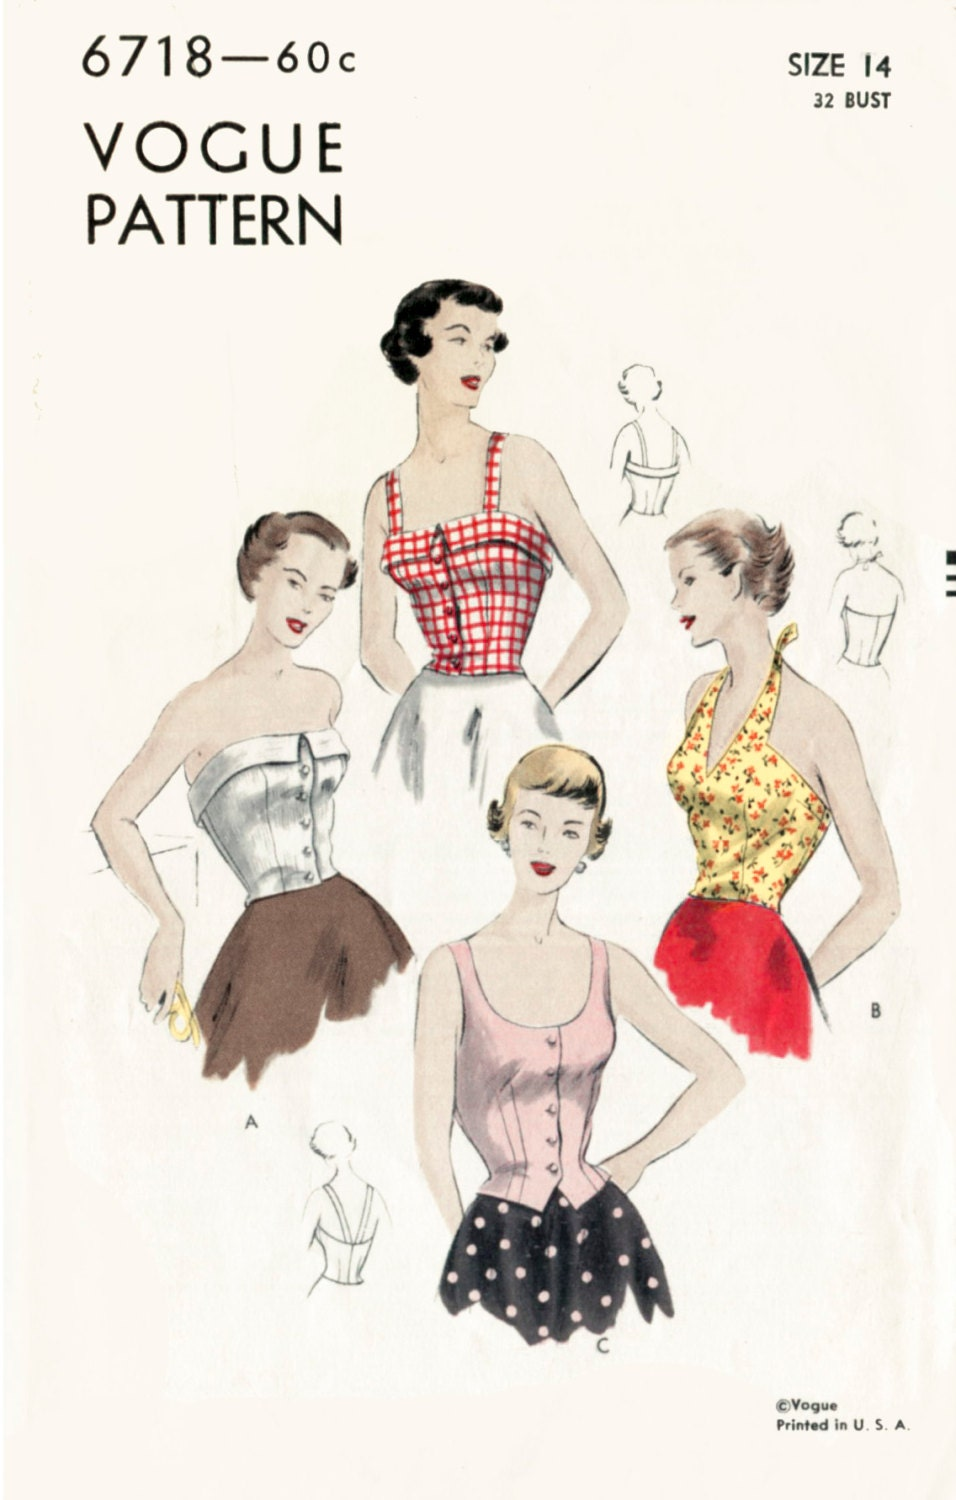 1950s 50s vintage sewing pattern crop top halter blouse 1950s 50s vintage sewing pattern crop top halter blouse bustier fitted bust 32 b32 waist 26 repro jeuxipadfo Choice Image